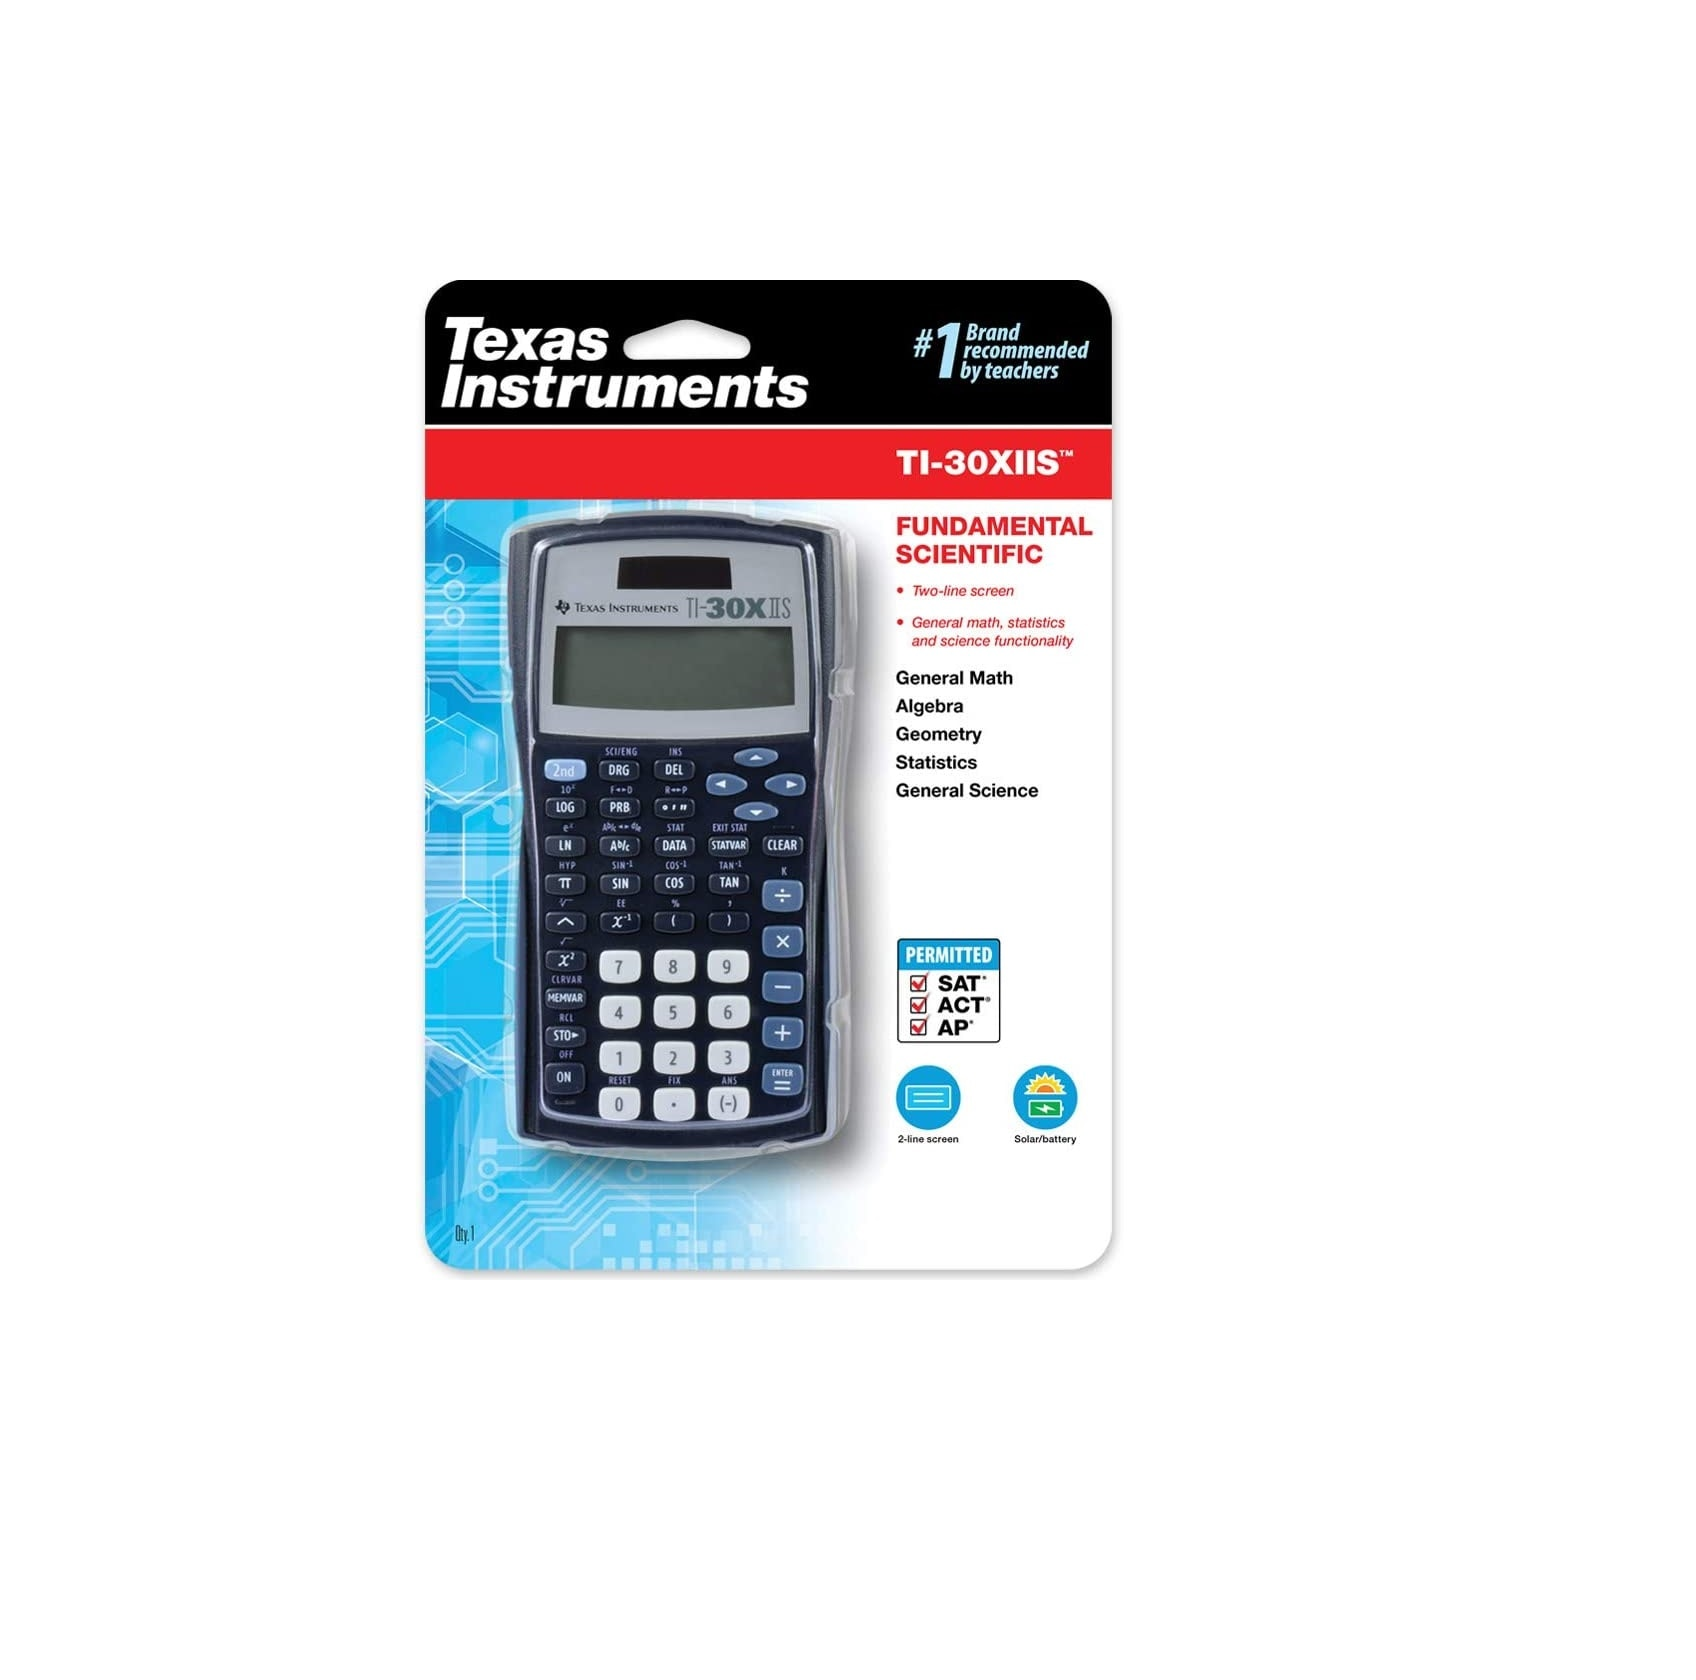 Scientific calculator with equation recall combines statistics and advanced scientific functions. Two-line display shows entries on the top line and results on the bottom line. Entry line on the top of the display shows up to 11 characters and can sc